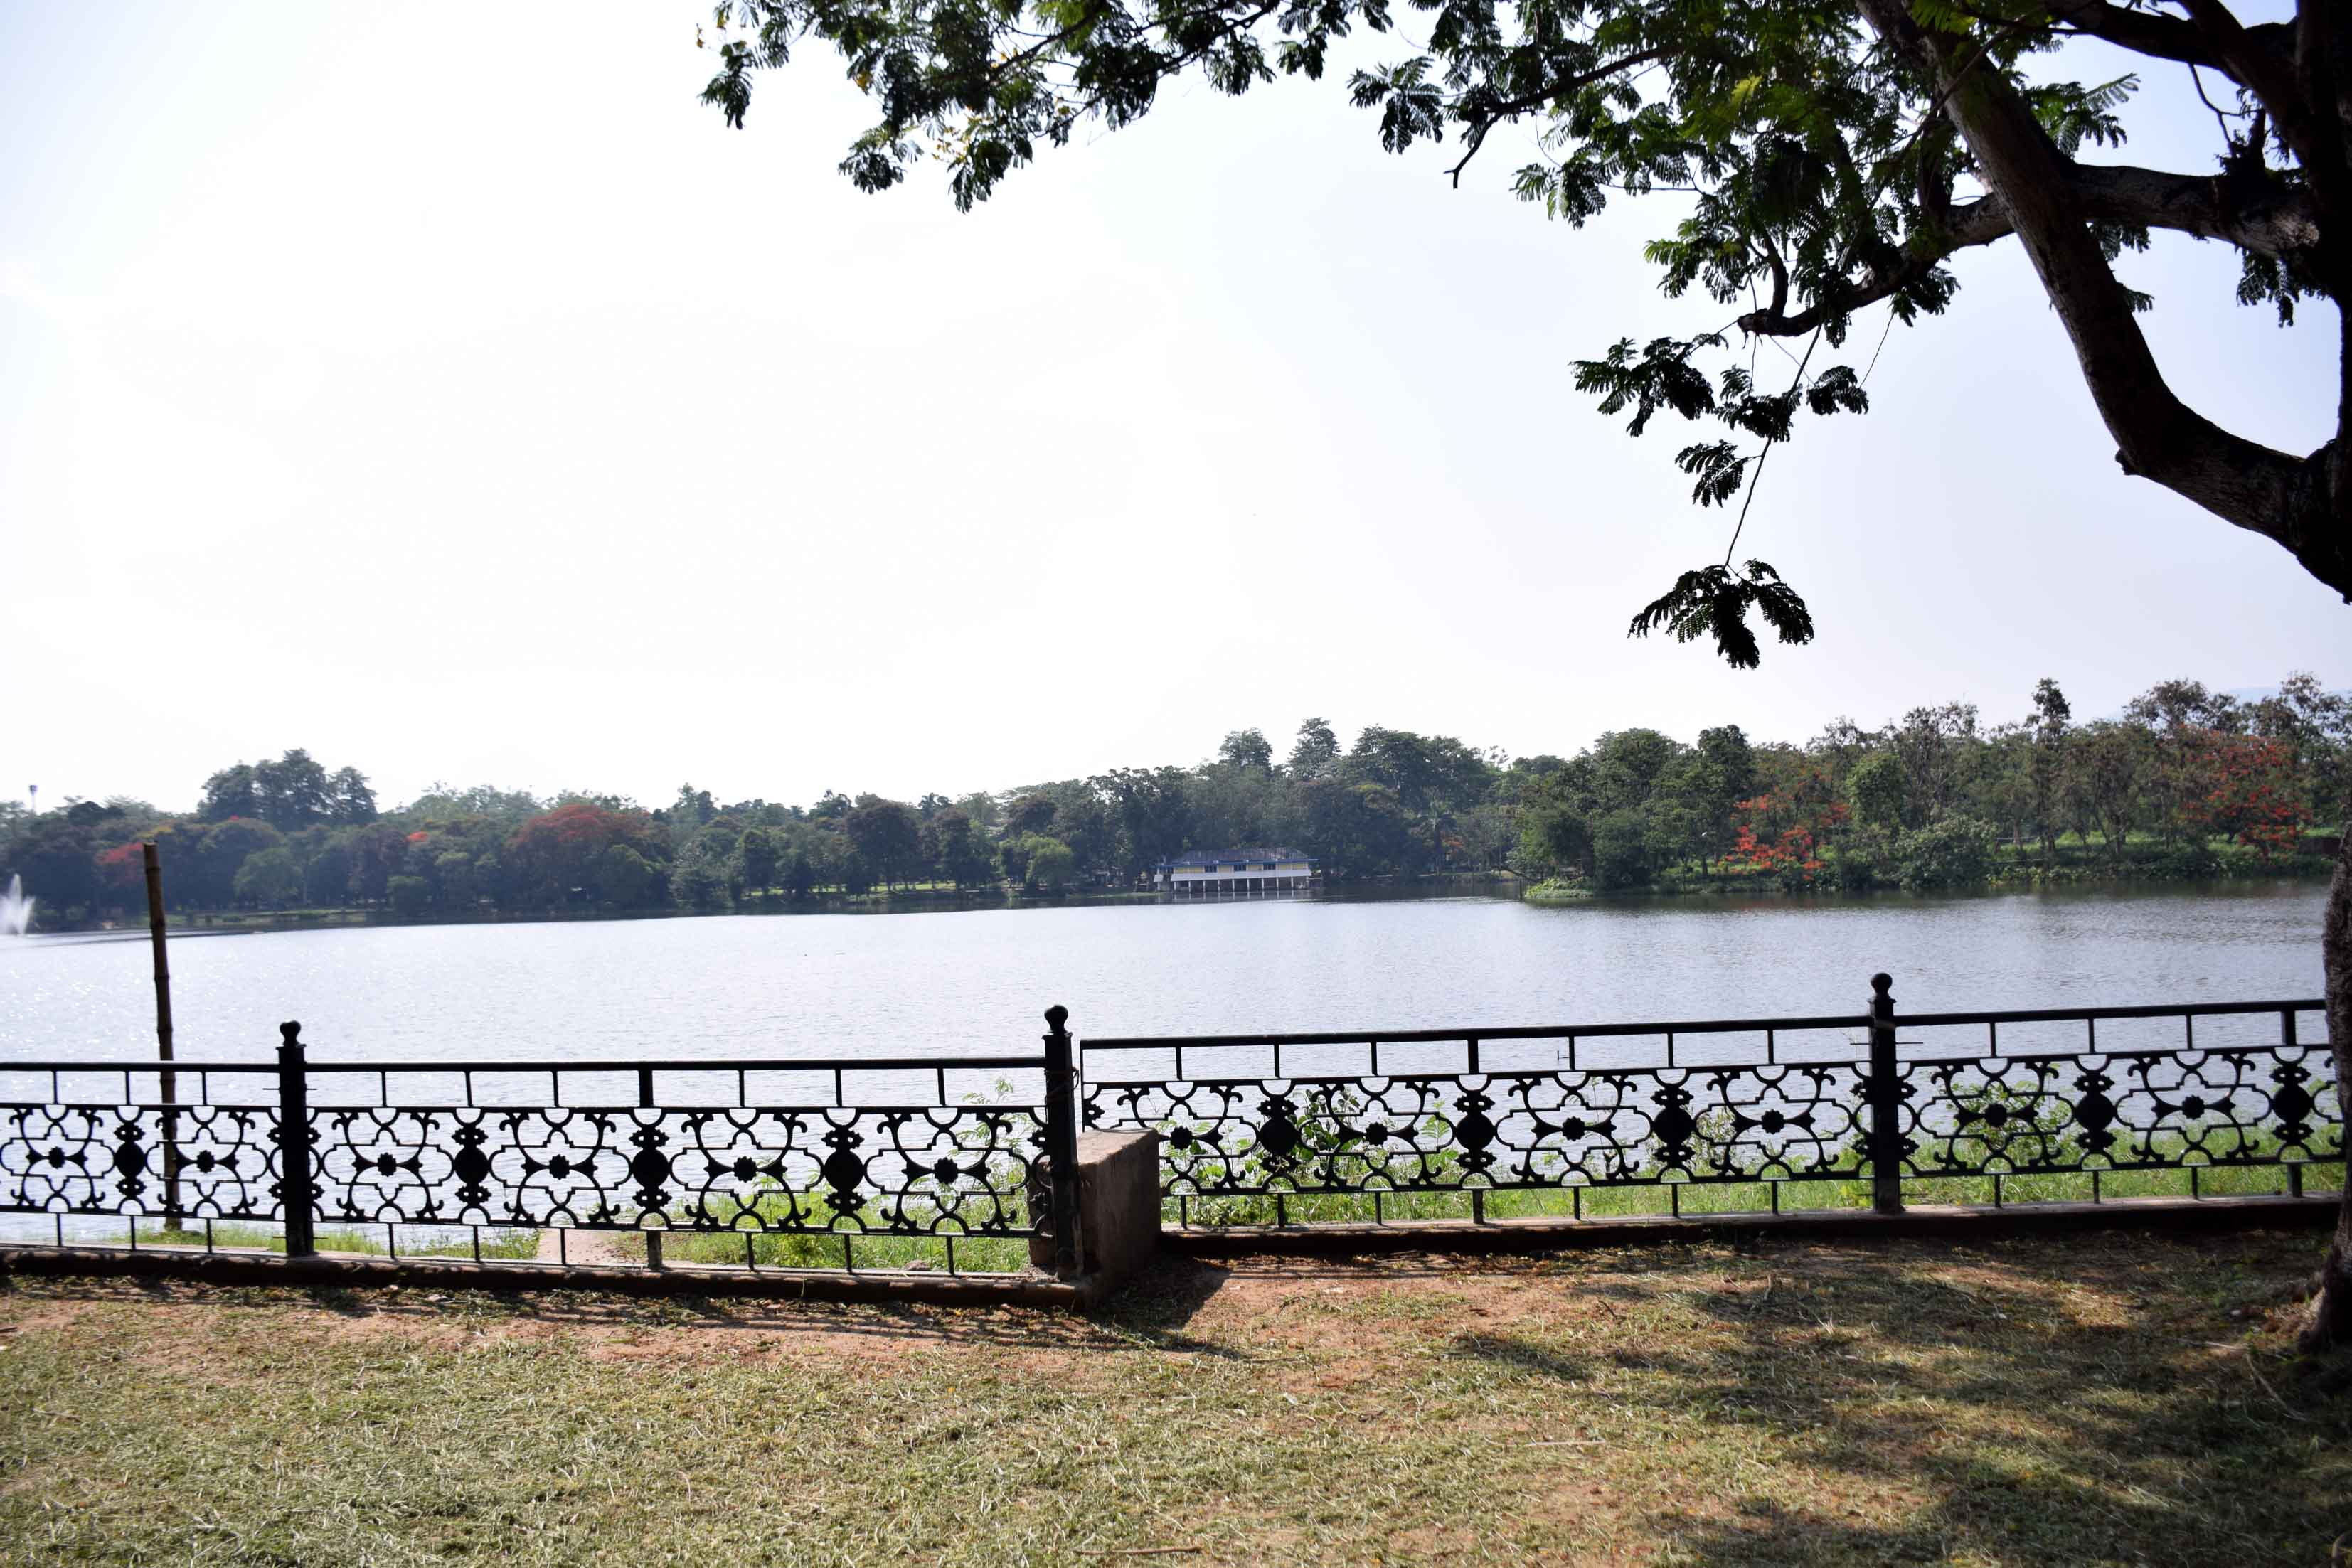 Scenic Jayanti Sarovar in Jubilee Park bustling with rui, catla and mrigal carp